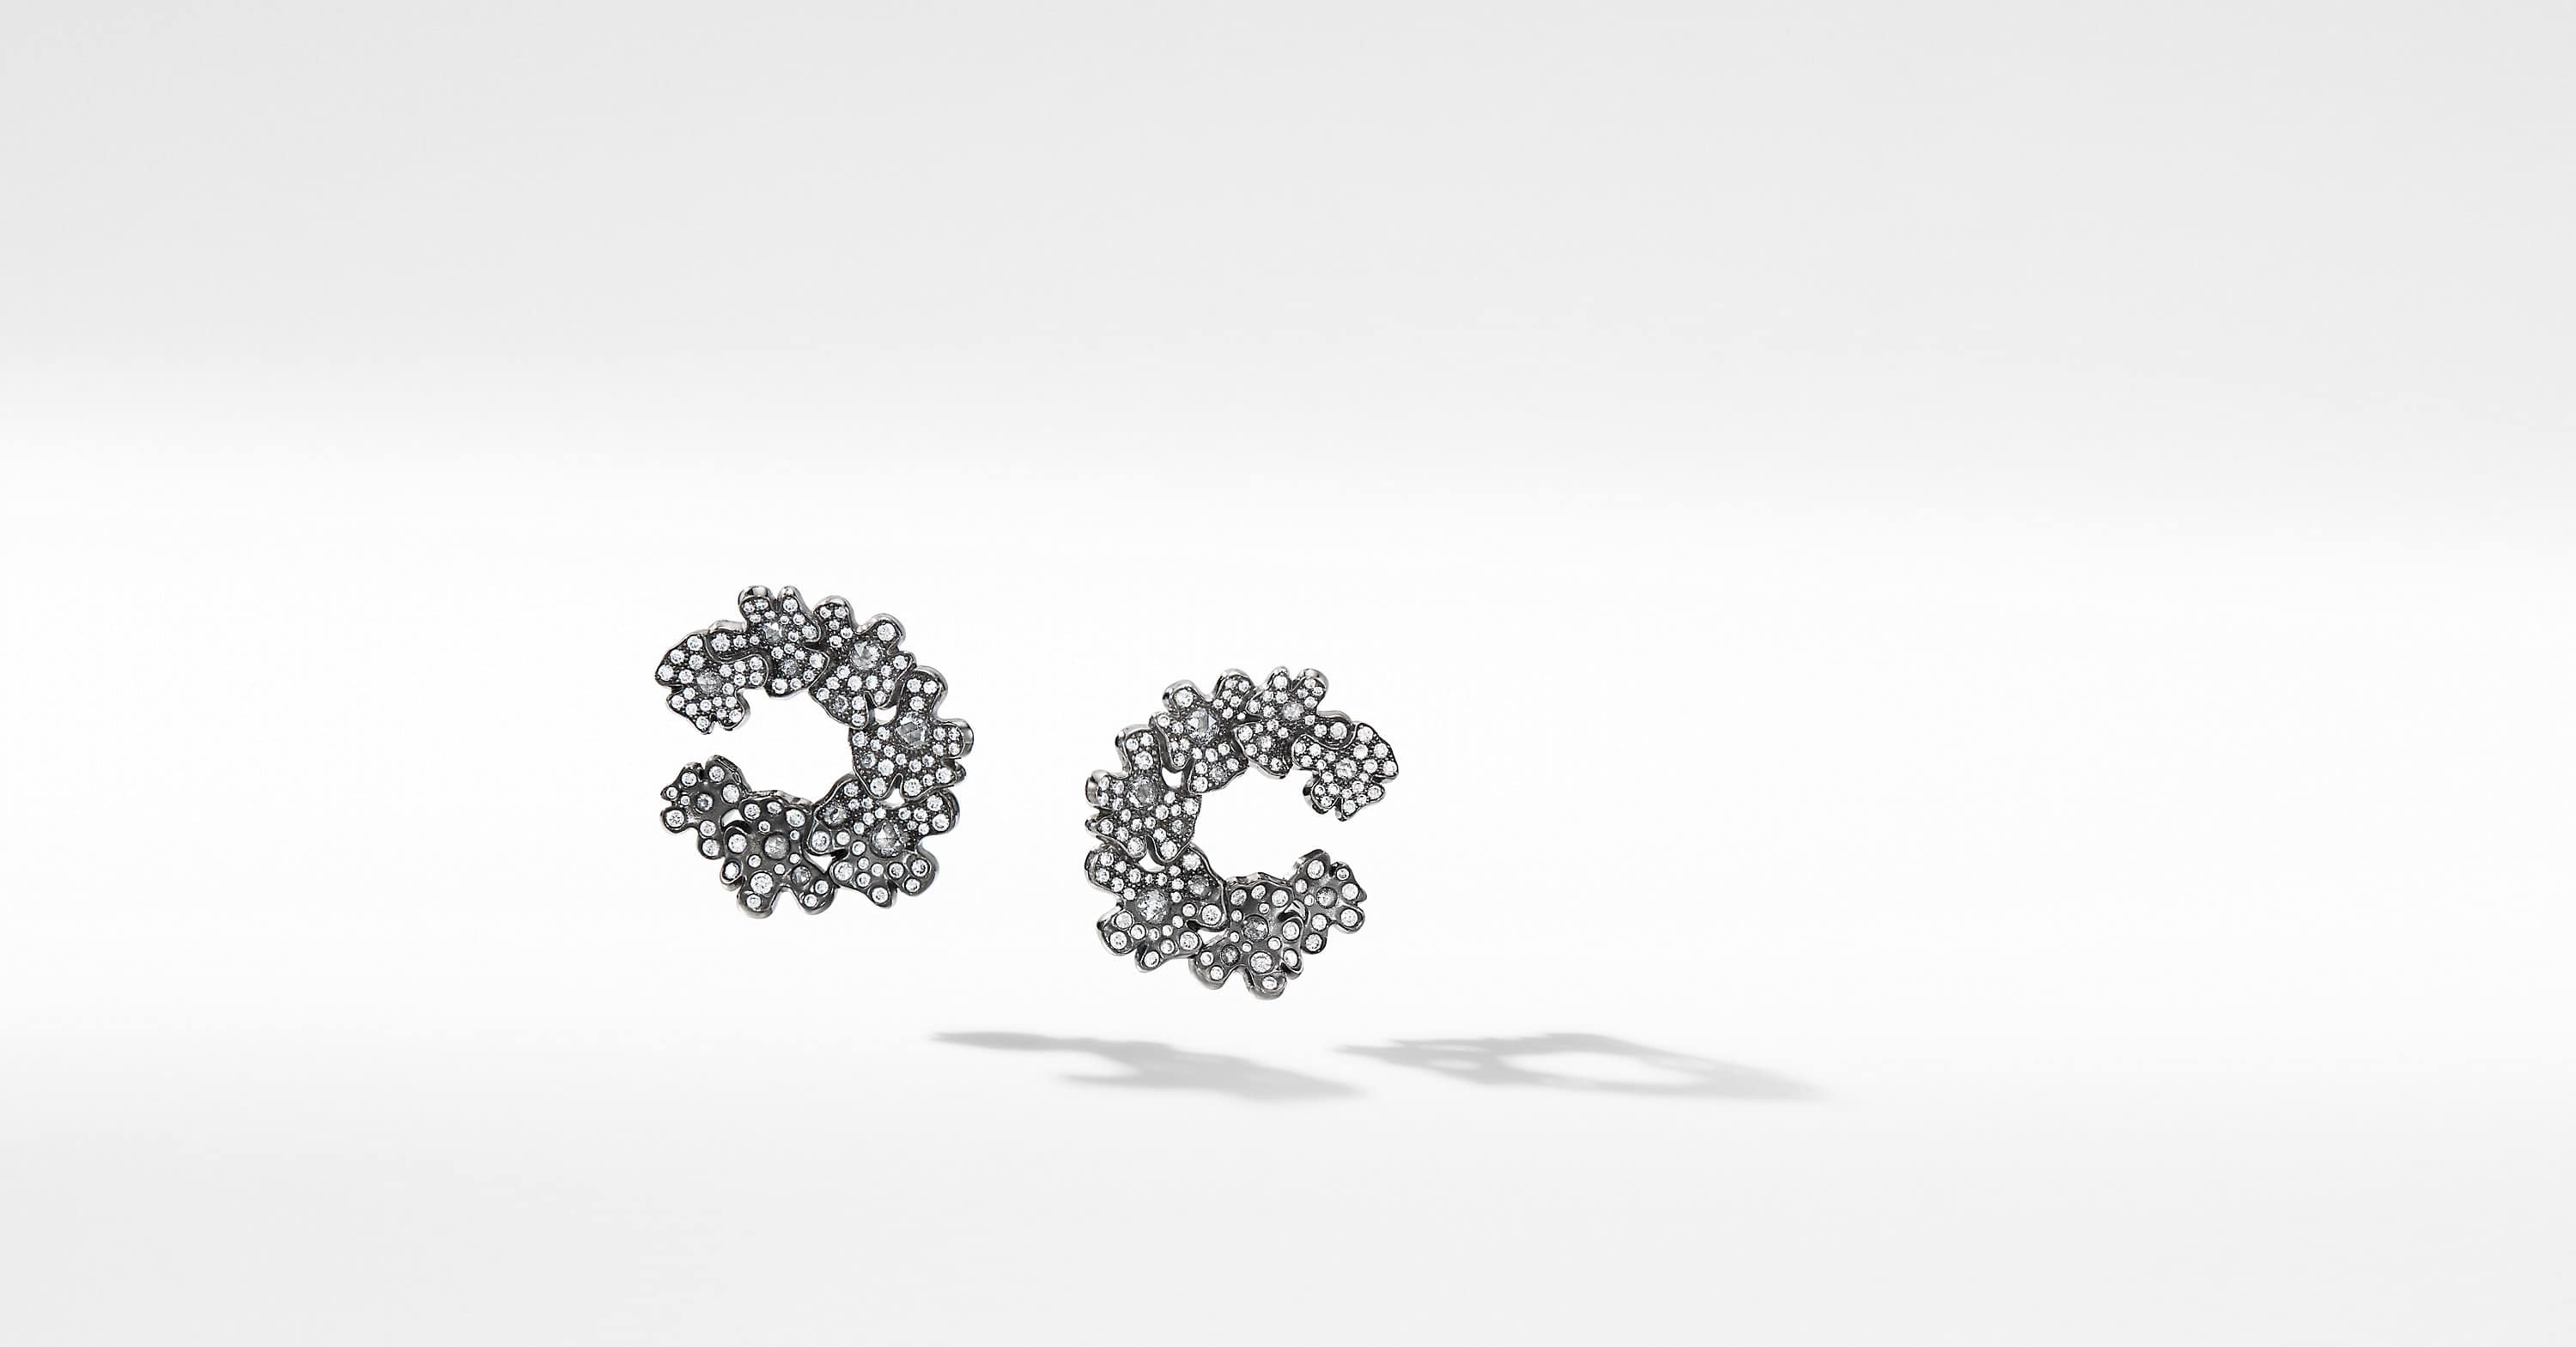 Night Petals Hoop Earrings in White Gold with Diamonds